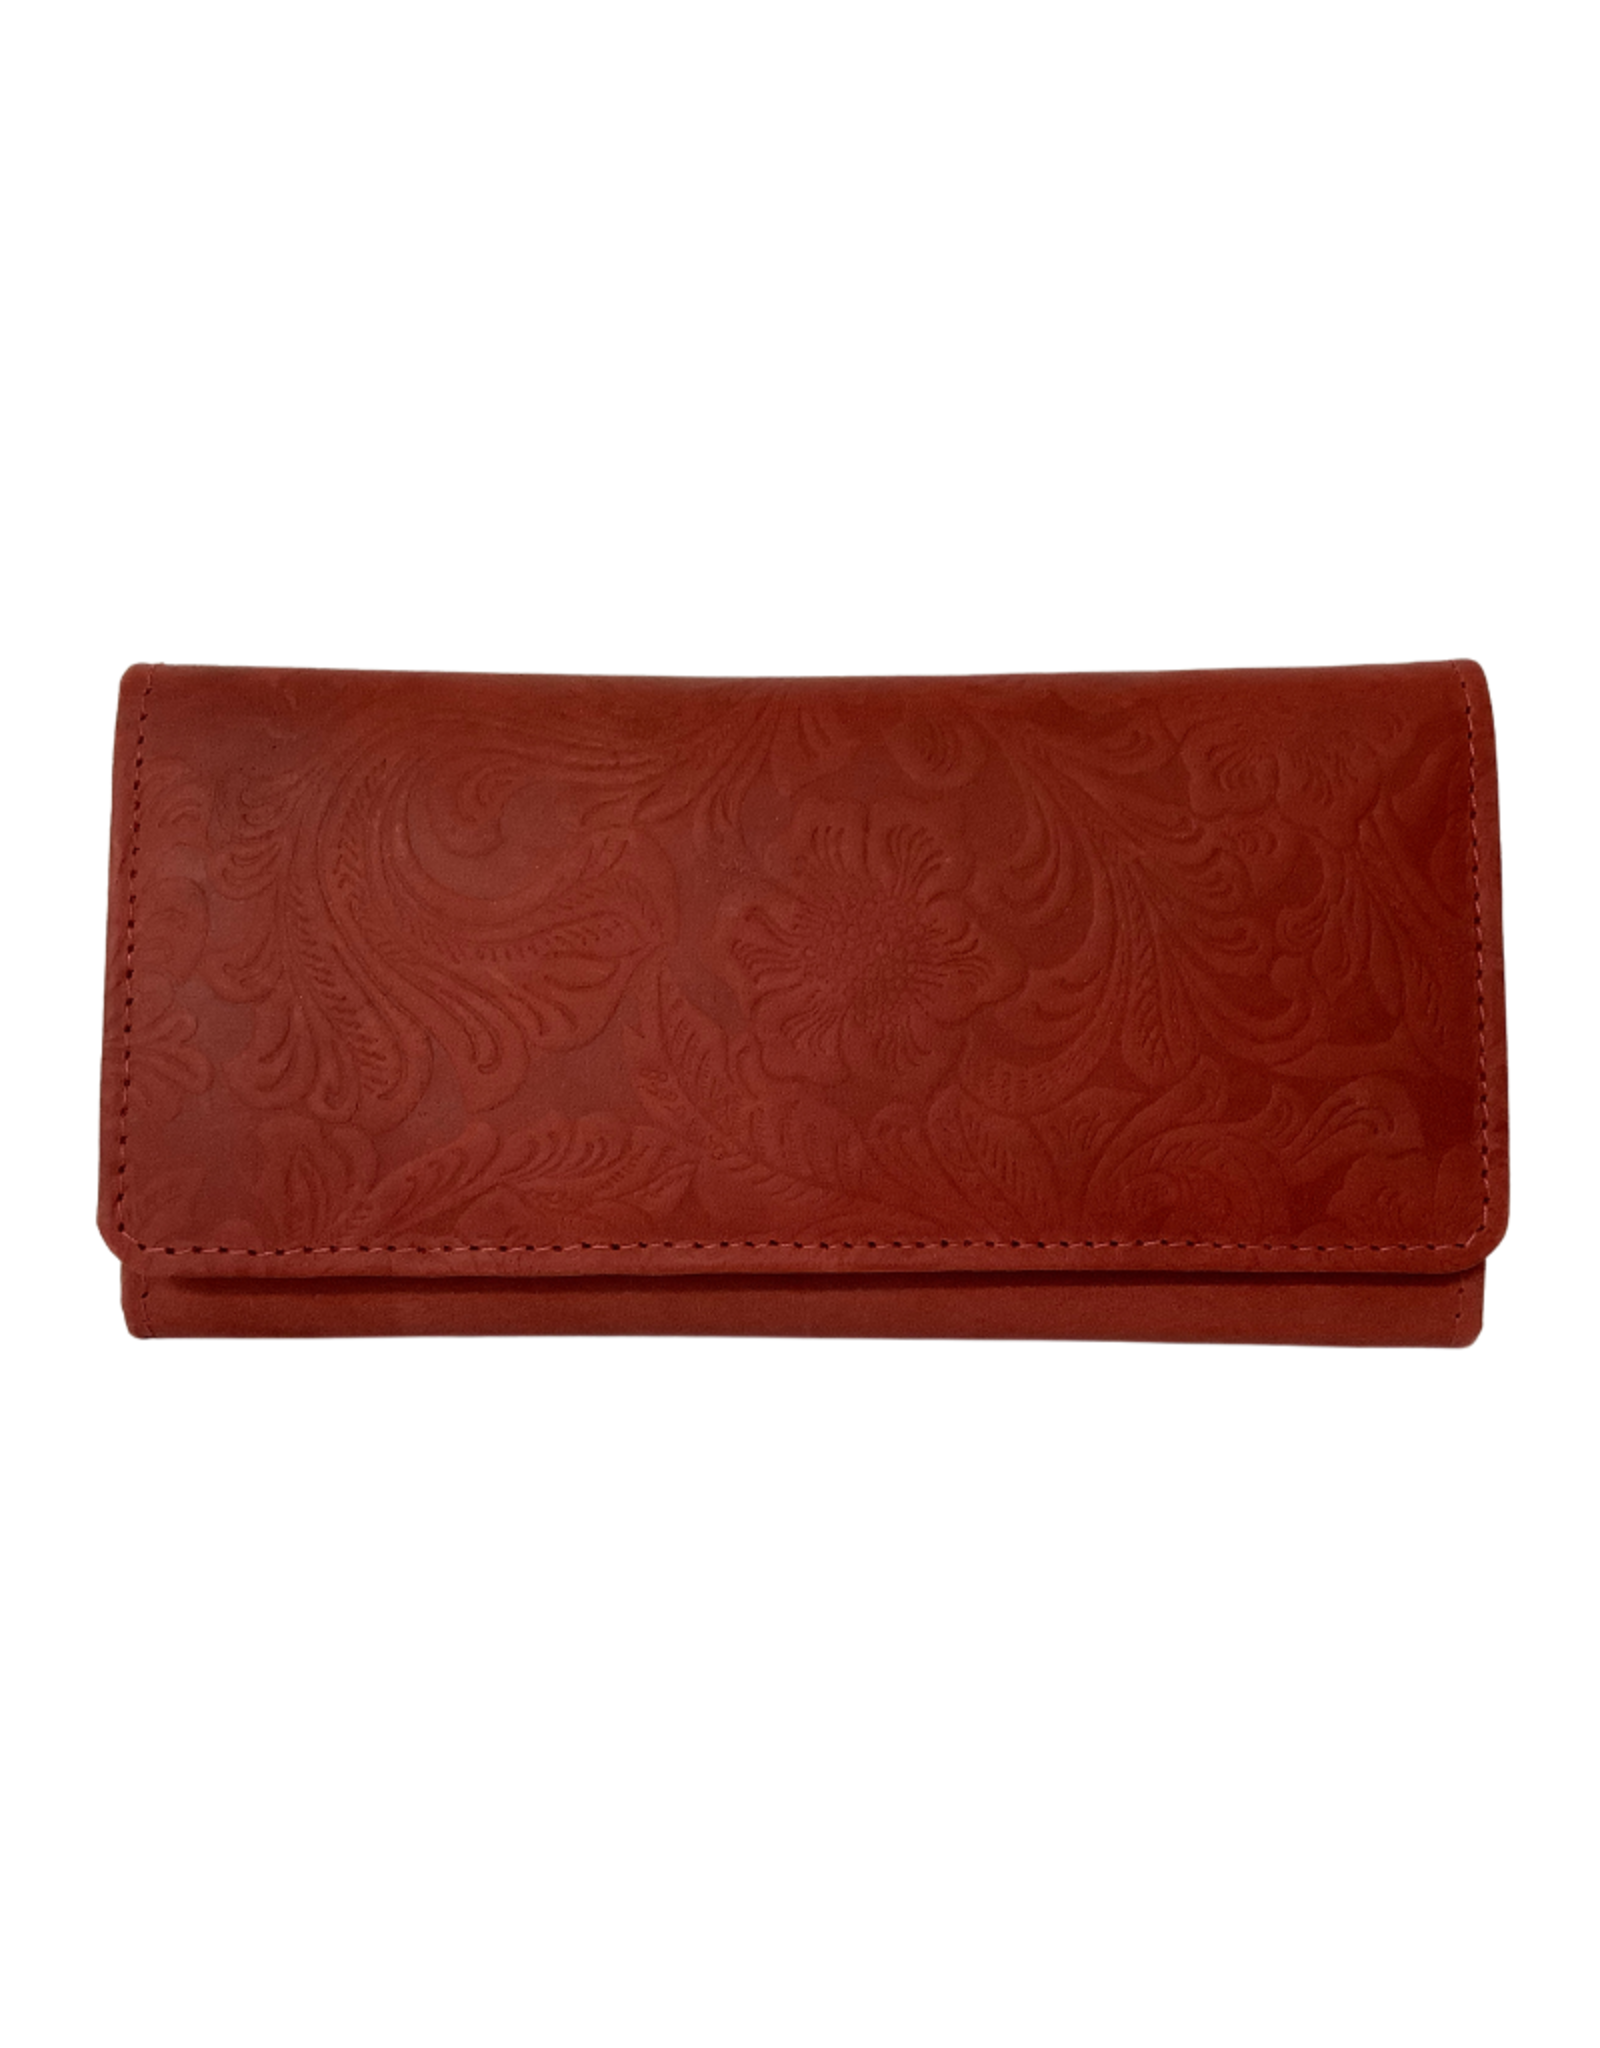 Wallet, Clutch Leather Embossed